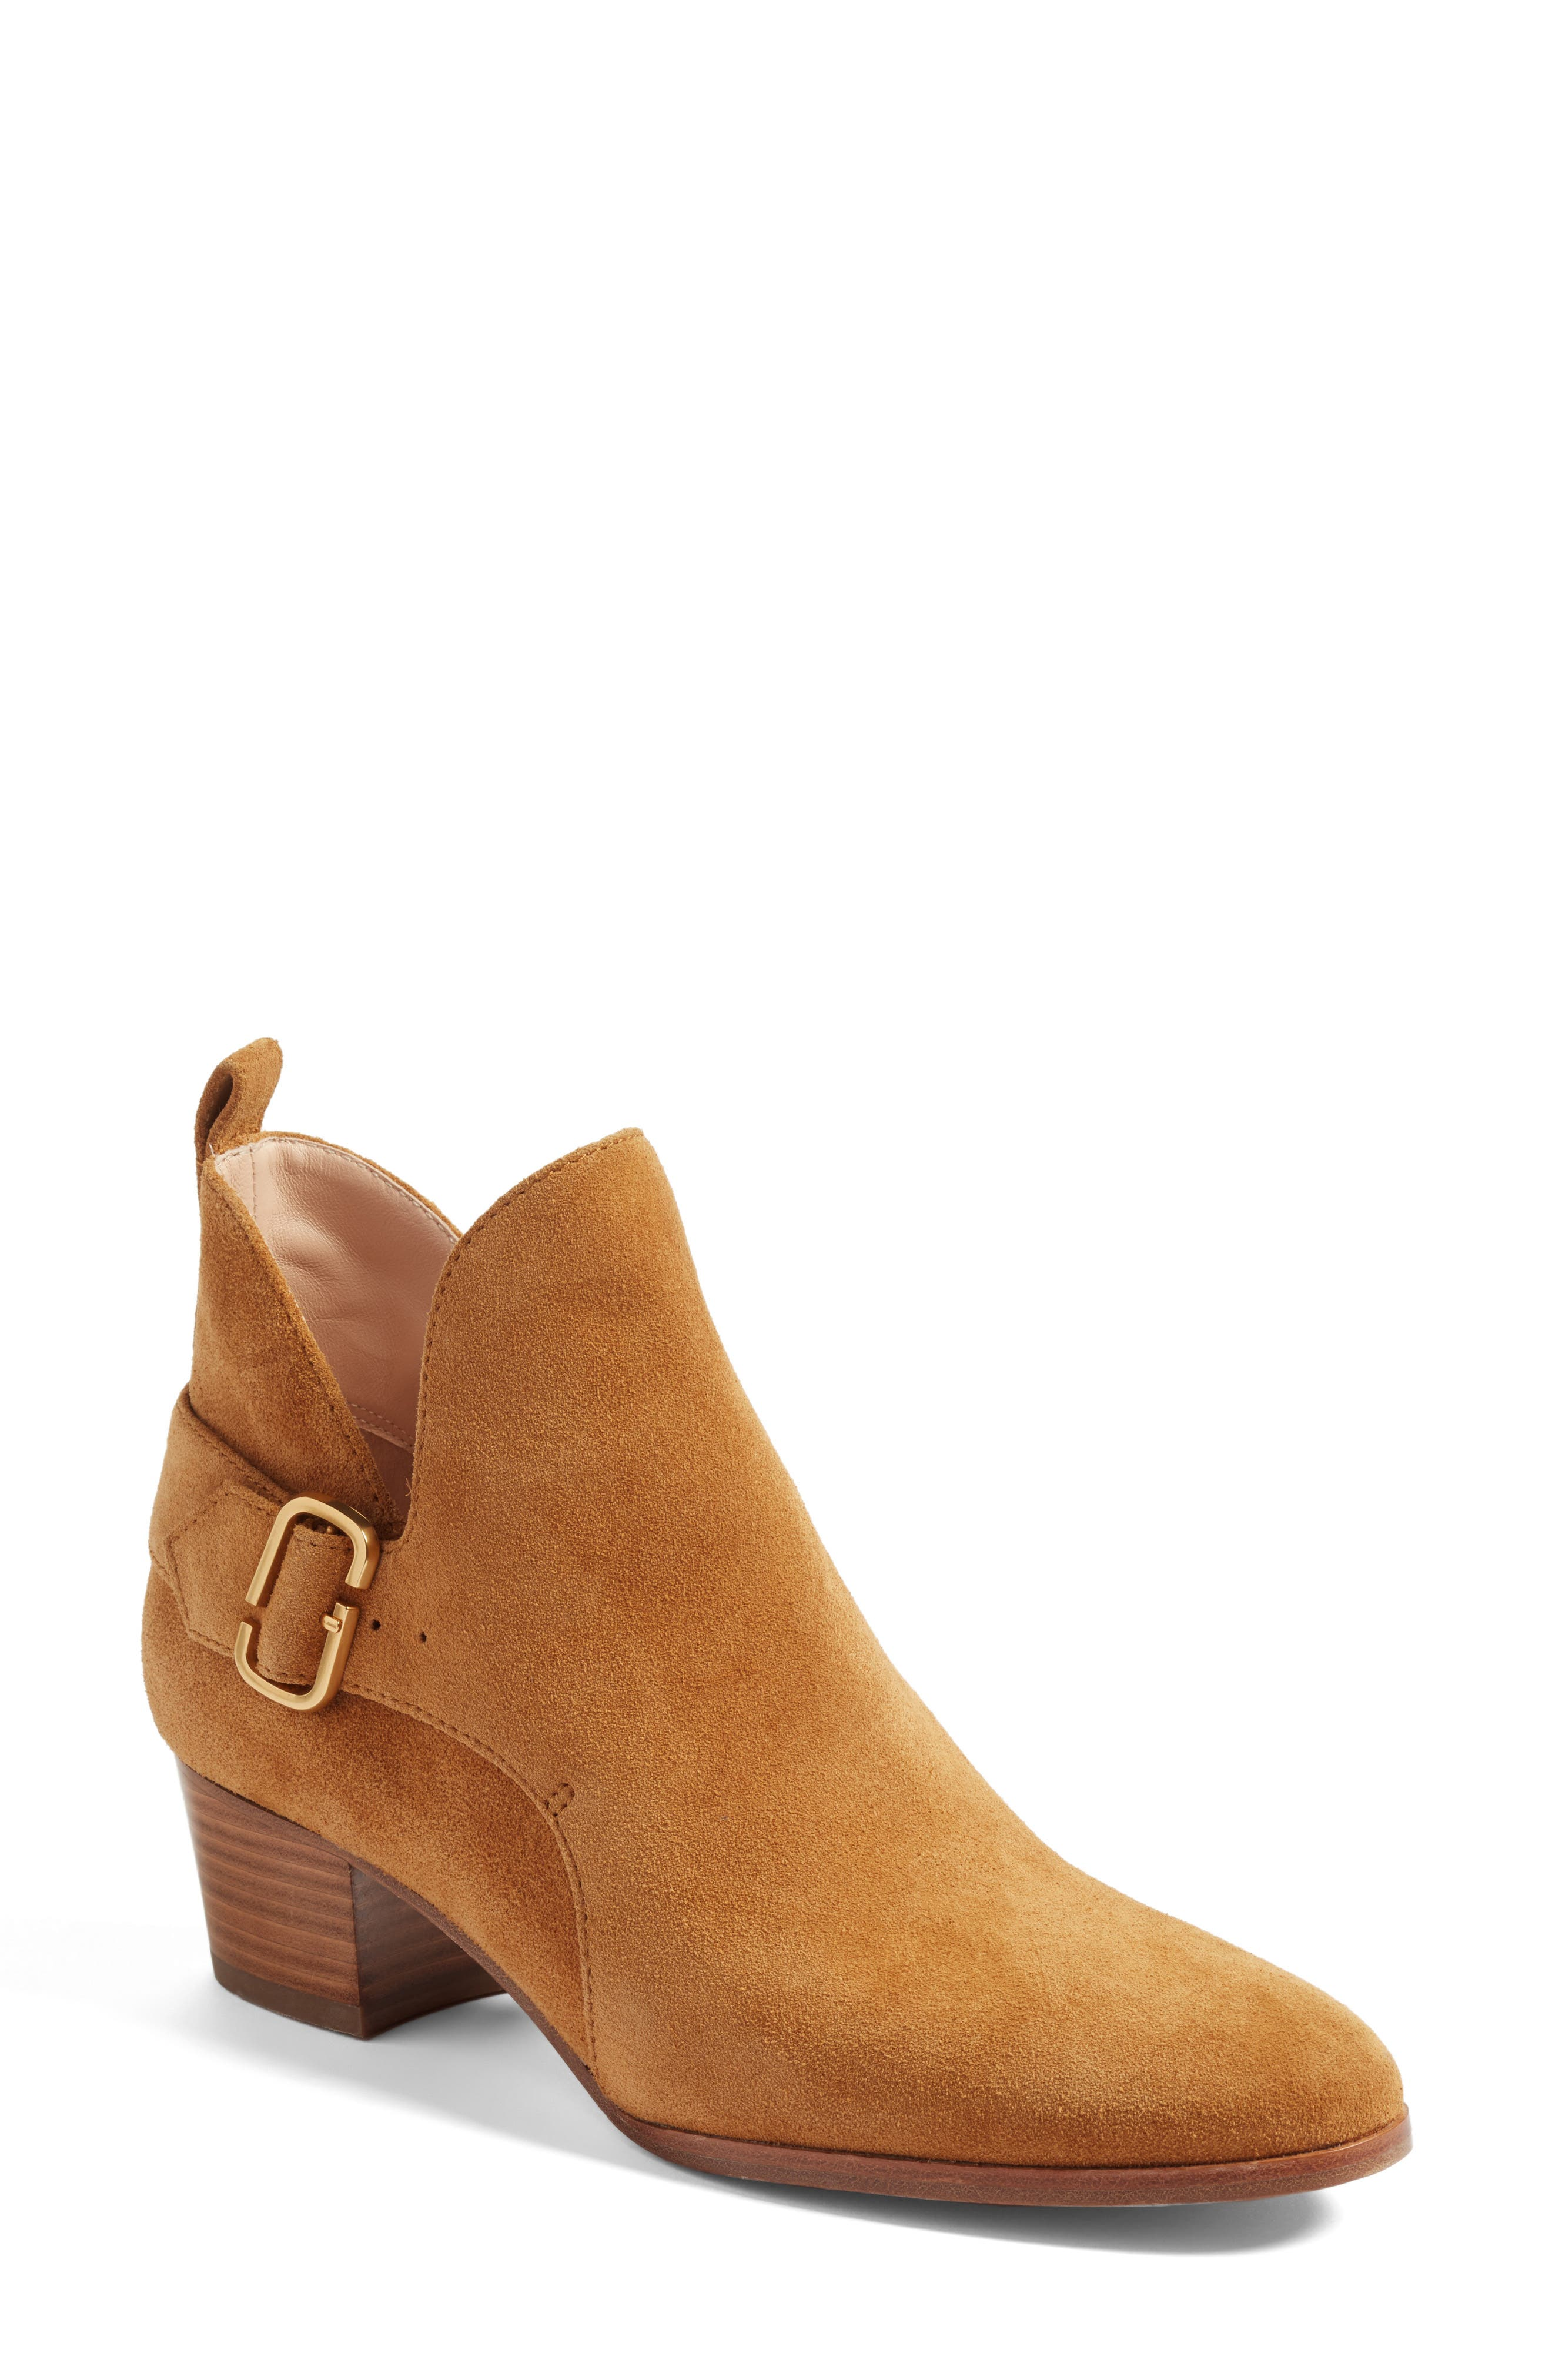 Main Image - Marc Jacobs Ginger Interlock Bootie (Women)